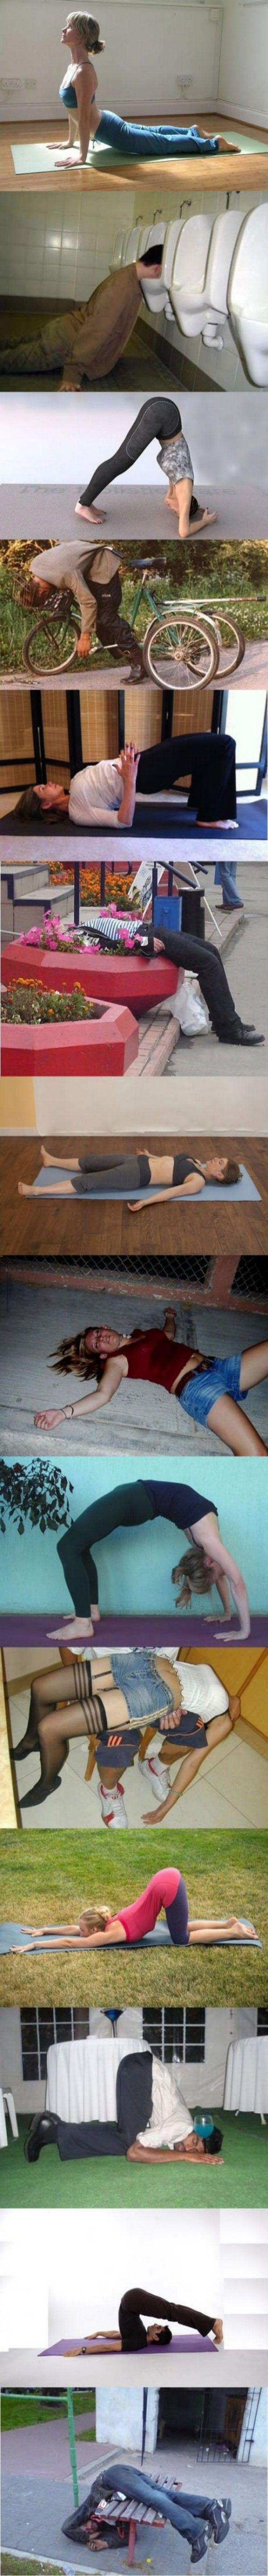 Yoga Sober and Drunk  // funny pictures - funny photos - funny images - funny pics - funny quotes - #lol #humor #funnypictures